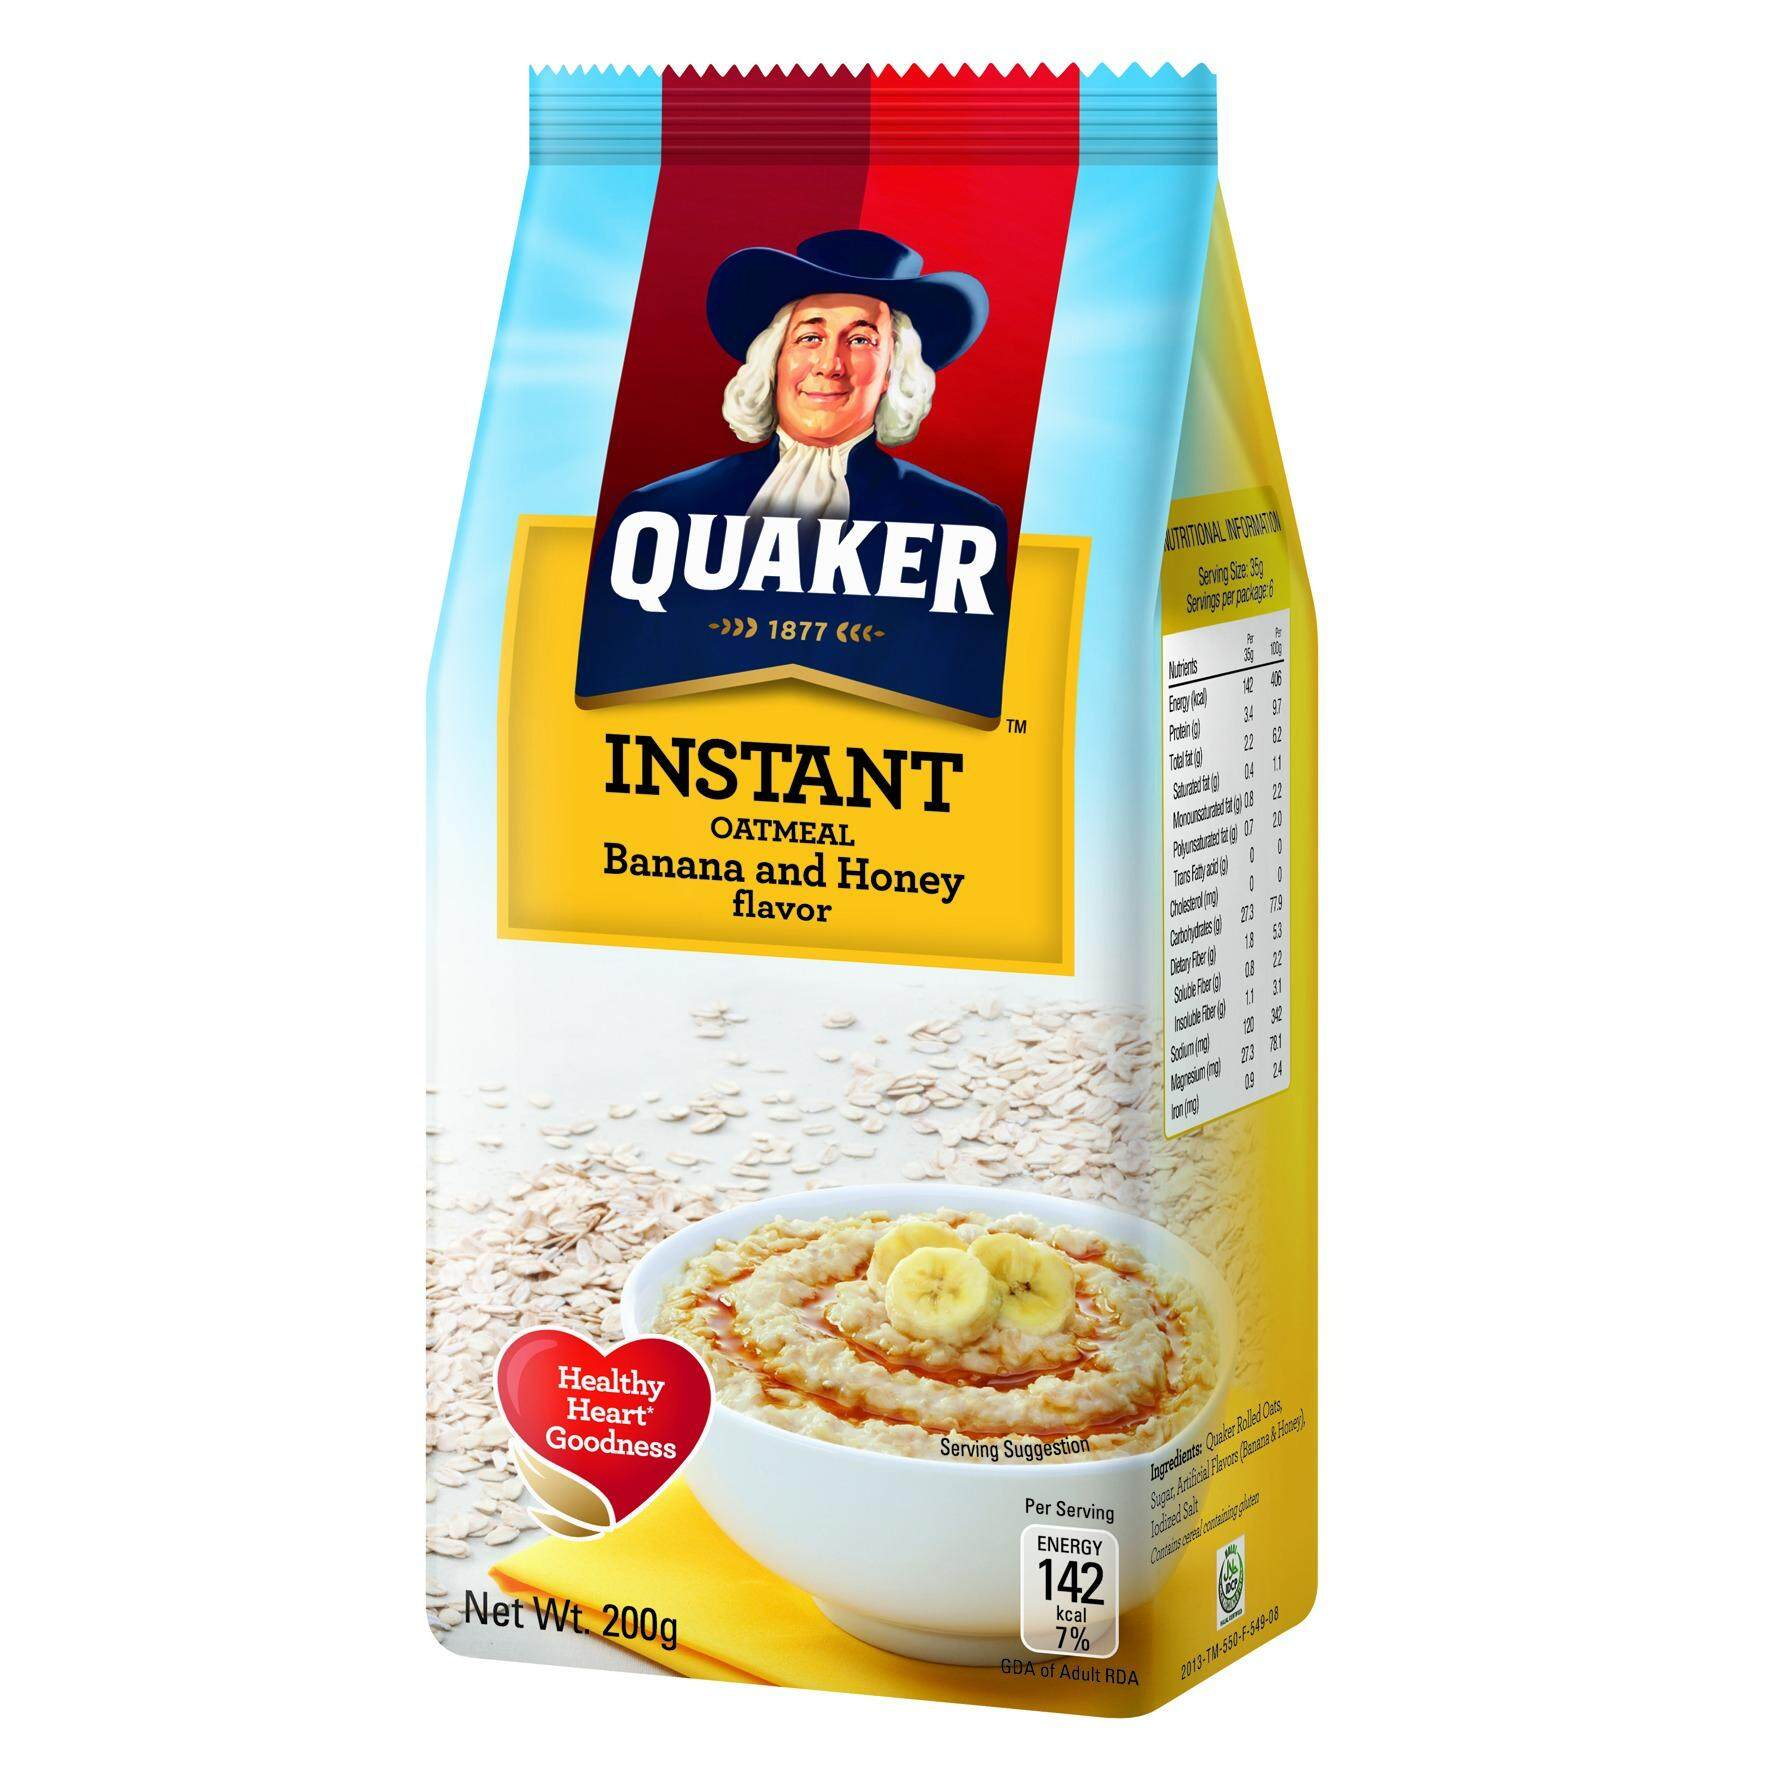 Quaker Products For The Best Prices In Malaysia